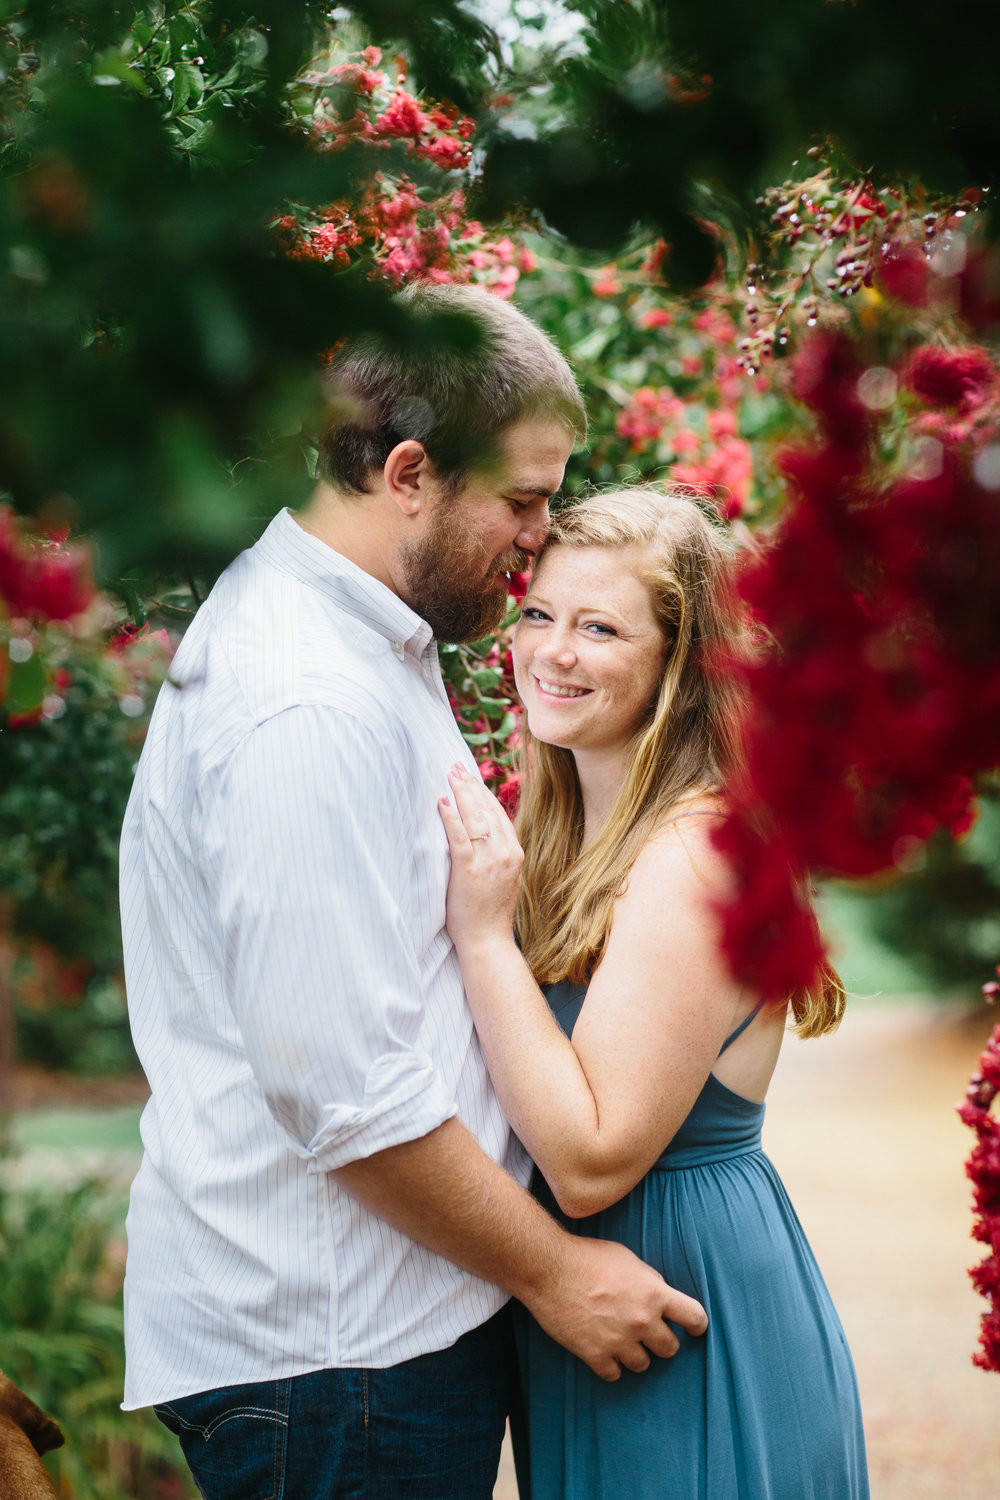 spring engagement photos.raleigh photographer.photo inspiration.engagement photographer.JPG